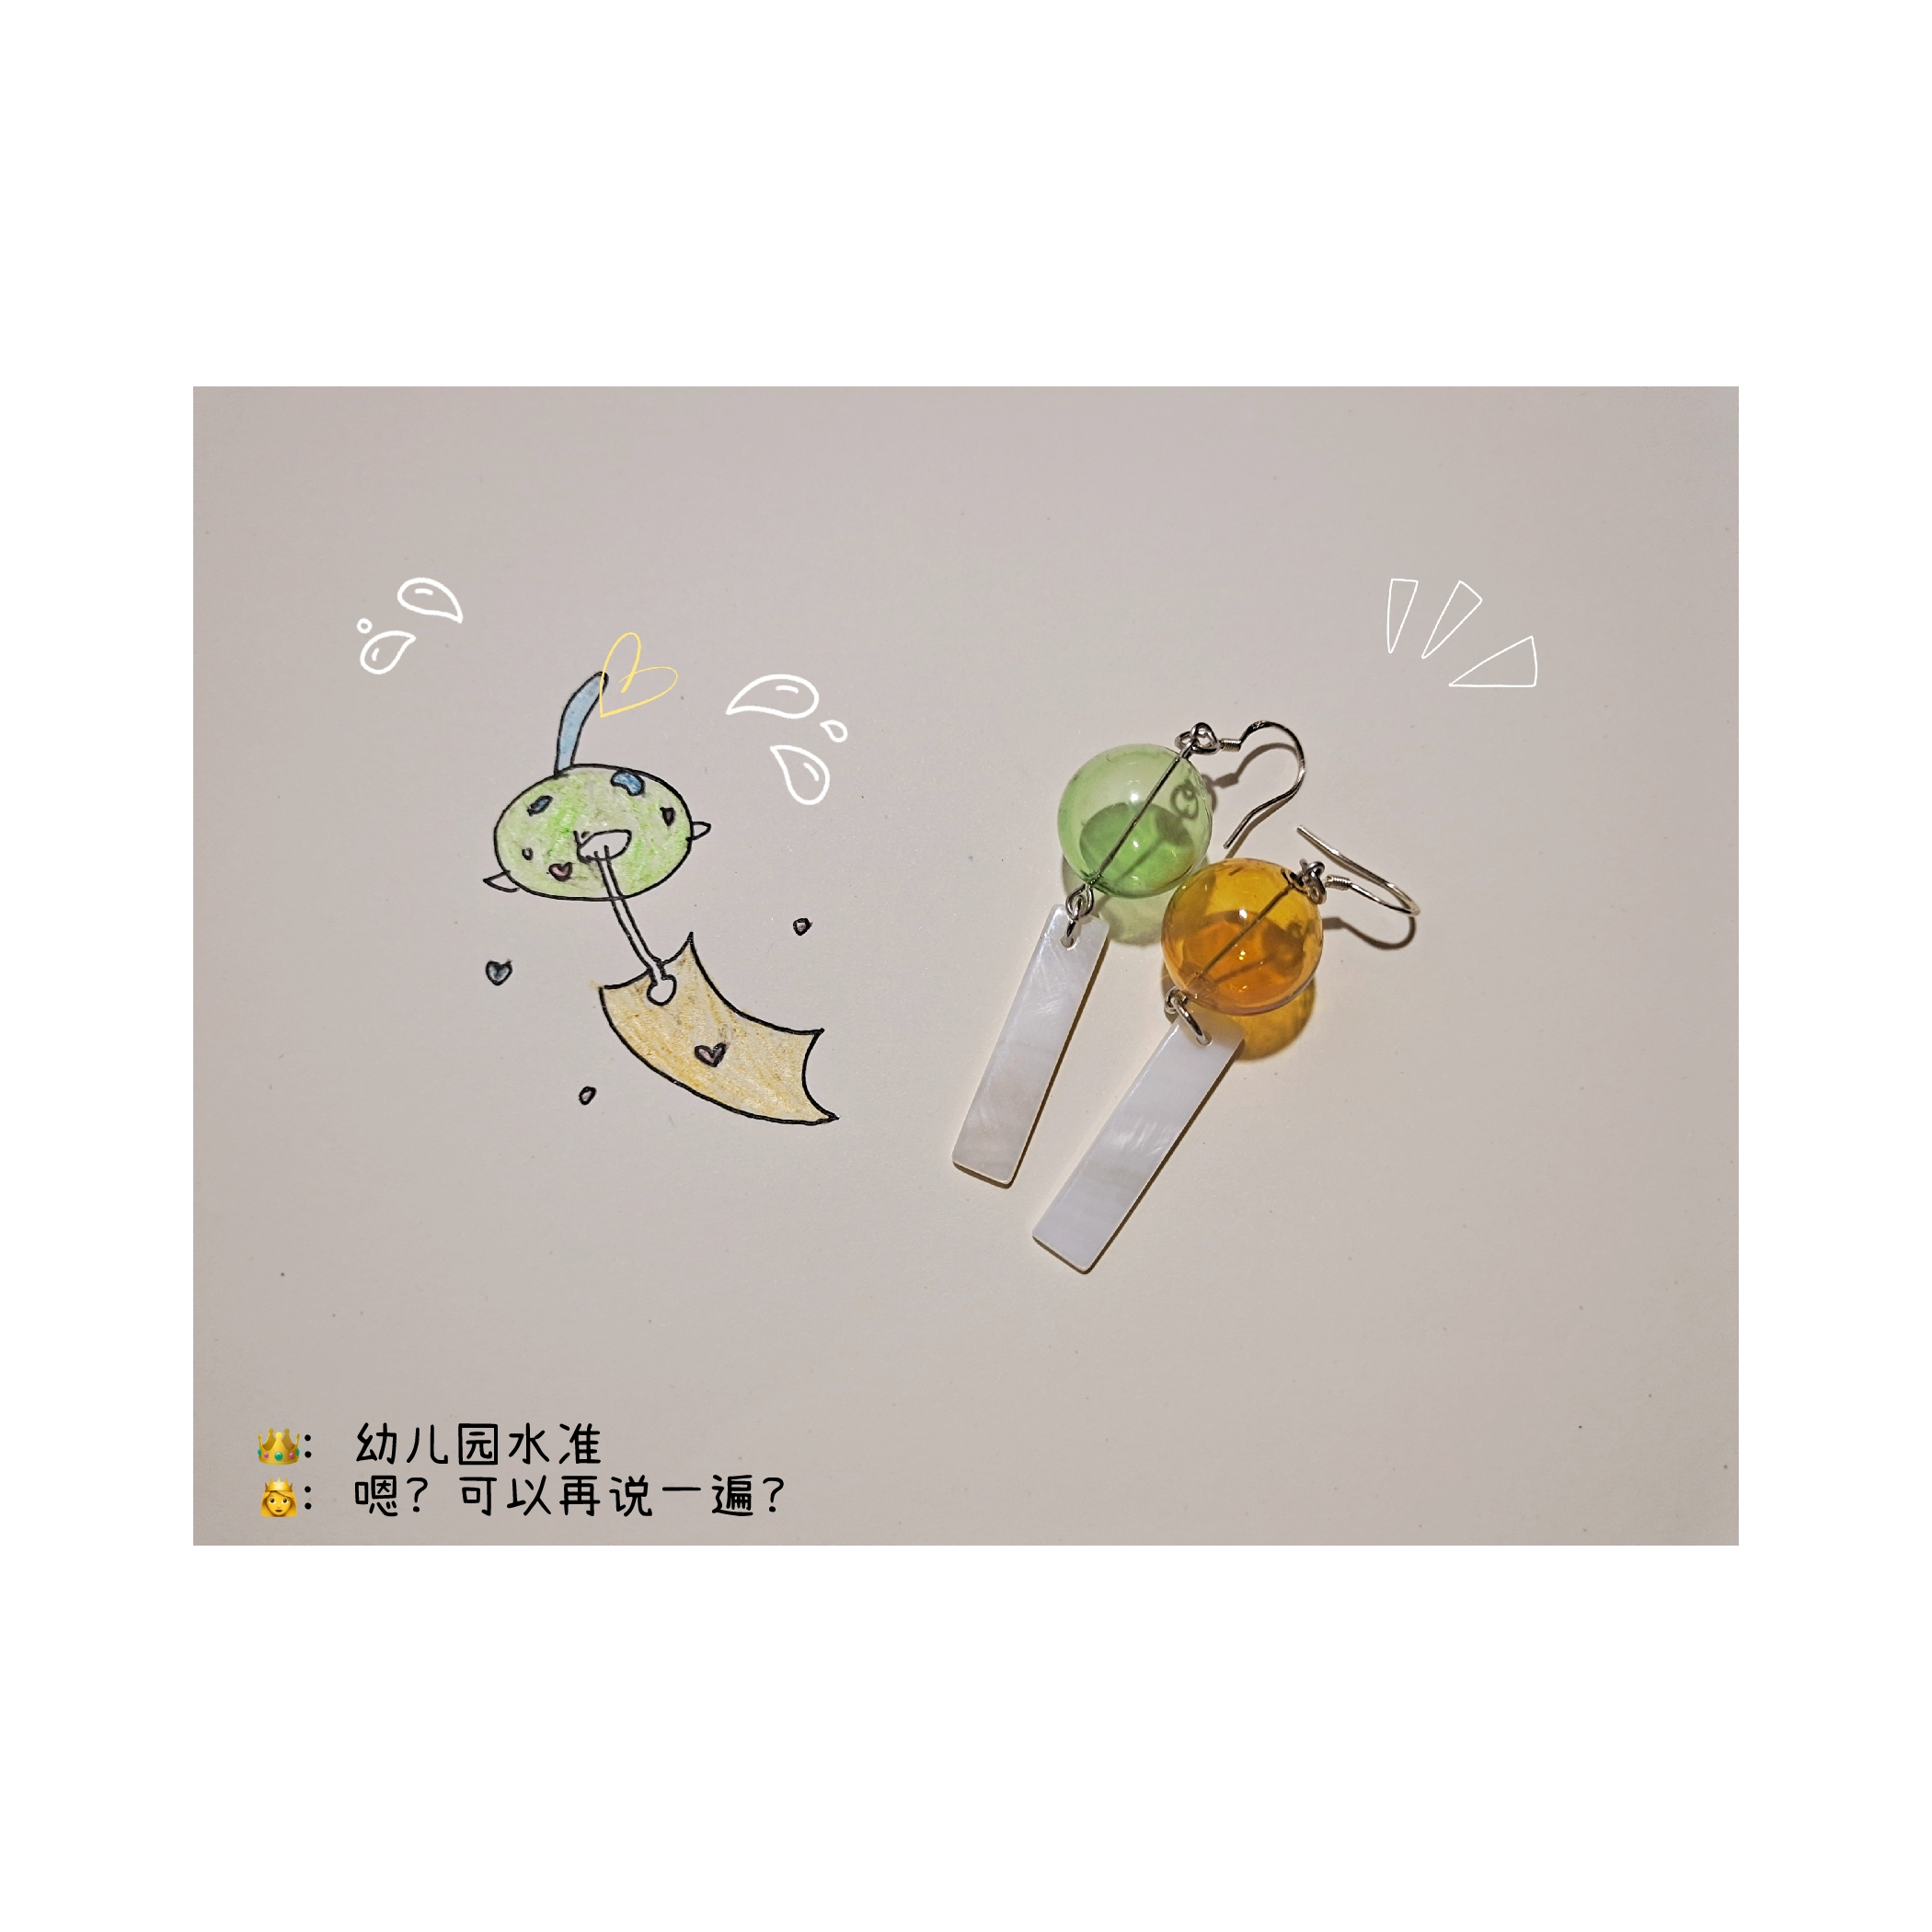 Full 38 packages / Japanese wind chime simple and wind glass bubble Earrings small fresh shell dream Earrings